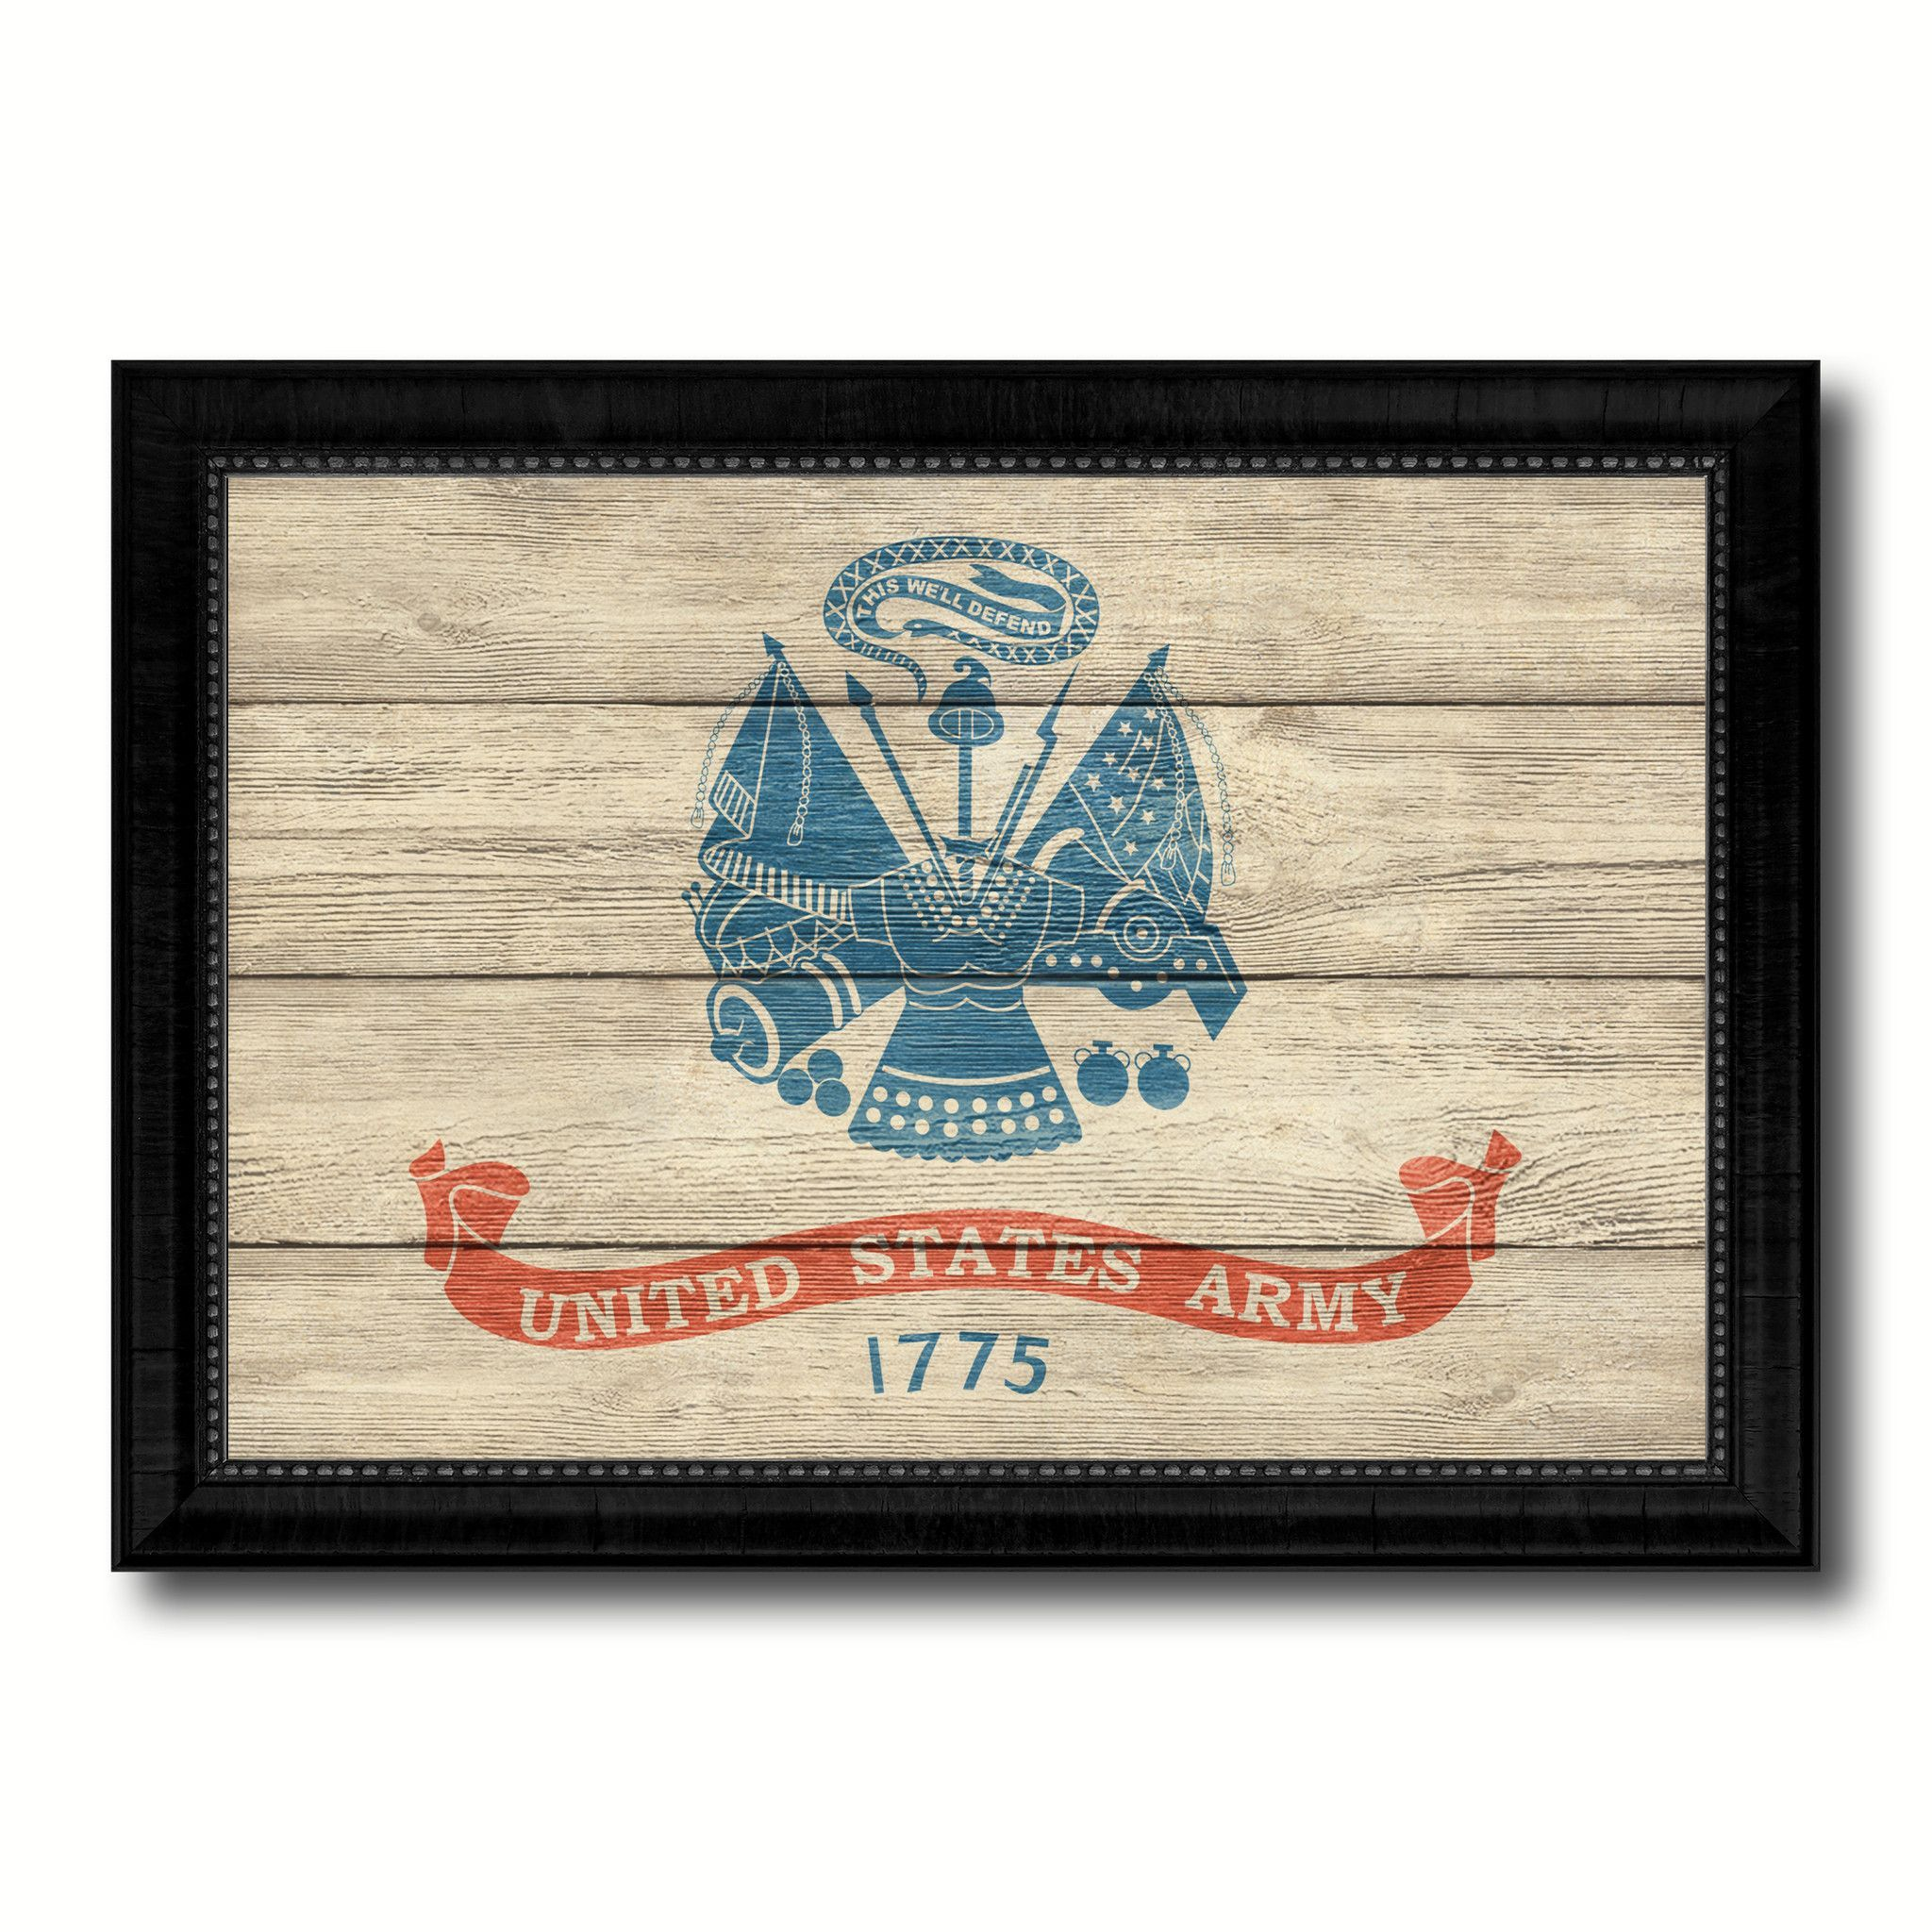 US Army Military Textured Flag Canvas Print, Picture Frame